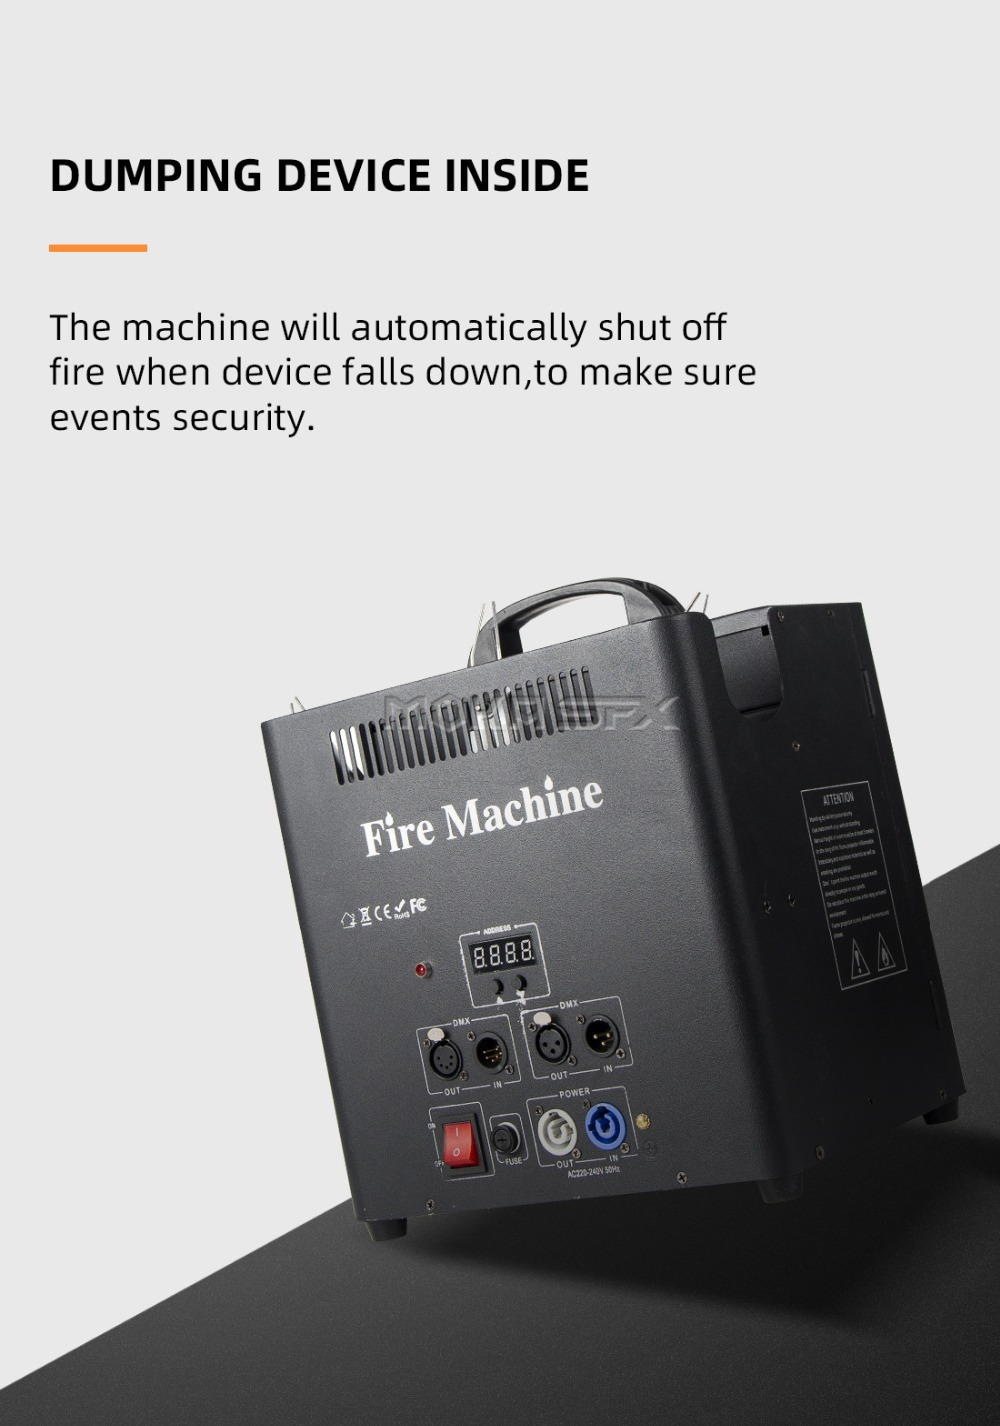 fire machine_08